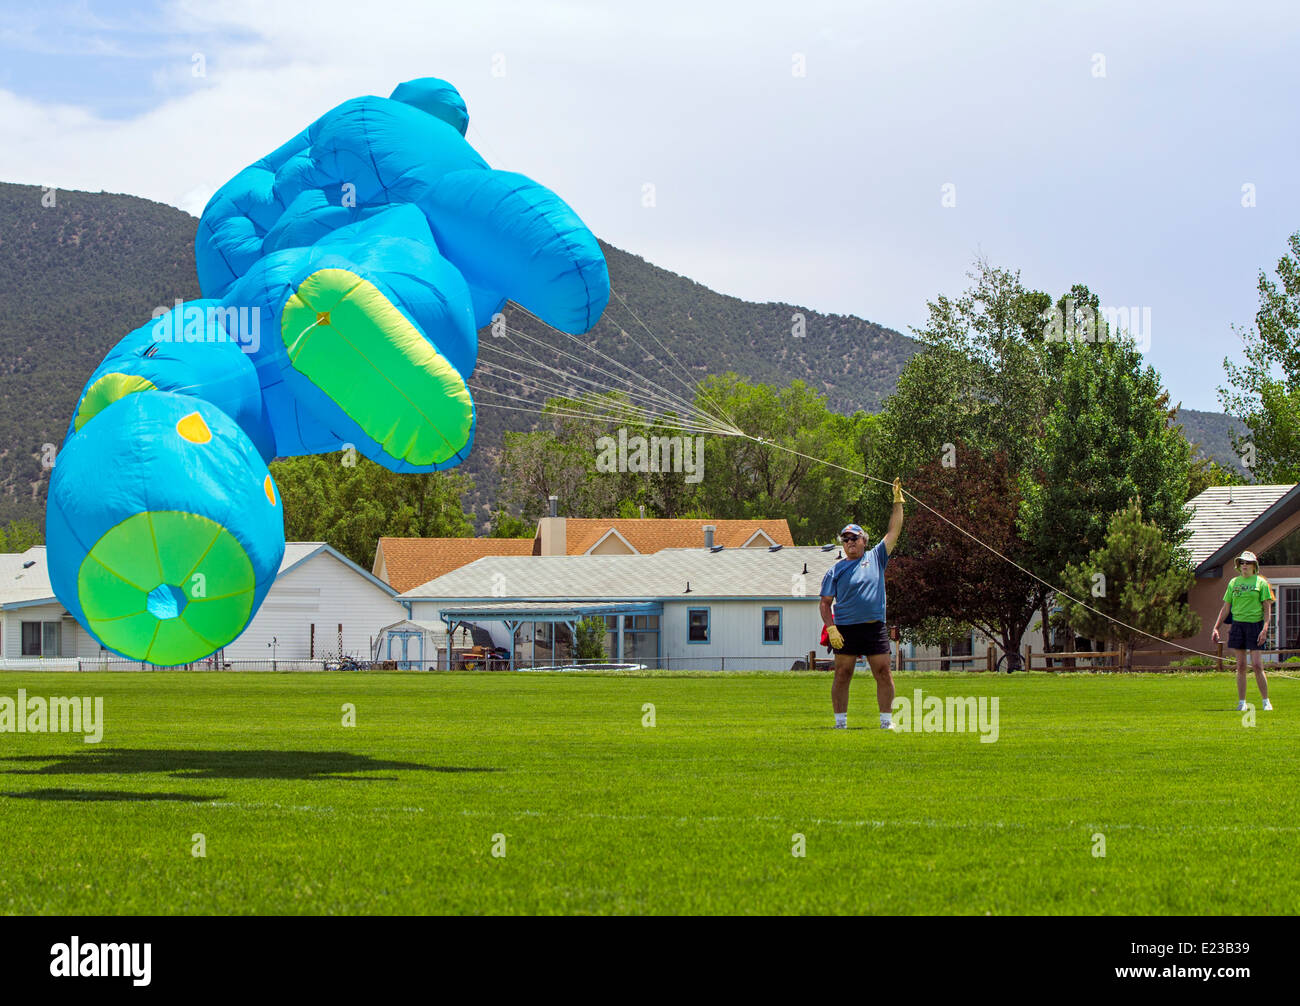 Man launching a large blue bear shaped kite from a park field - Stock Image